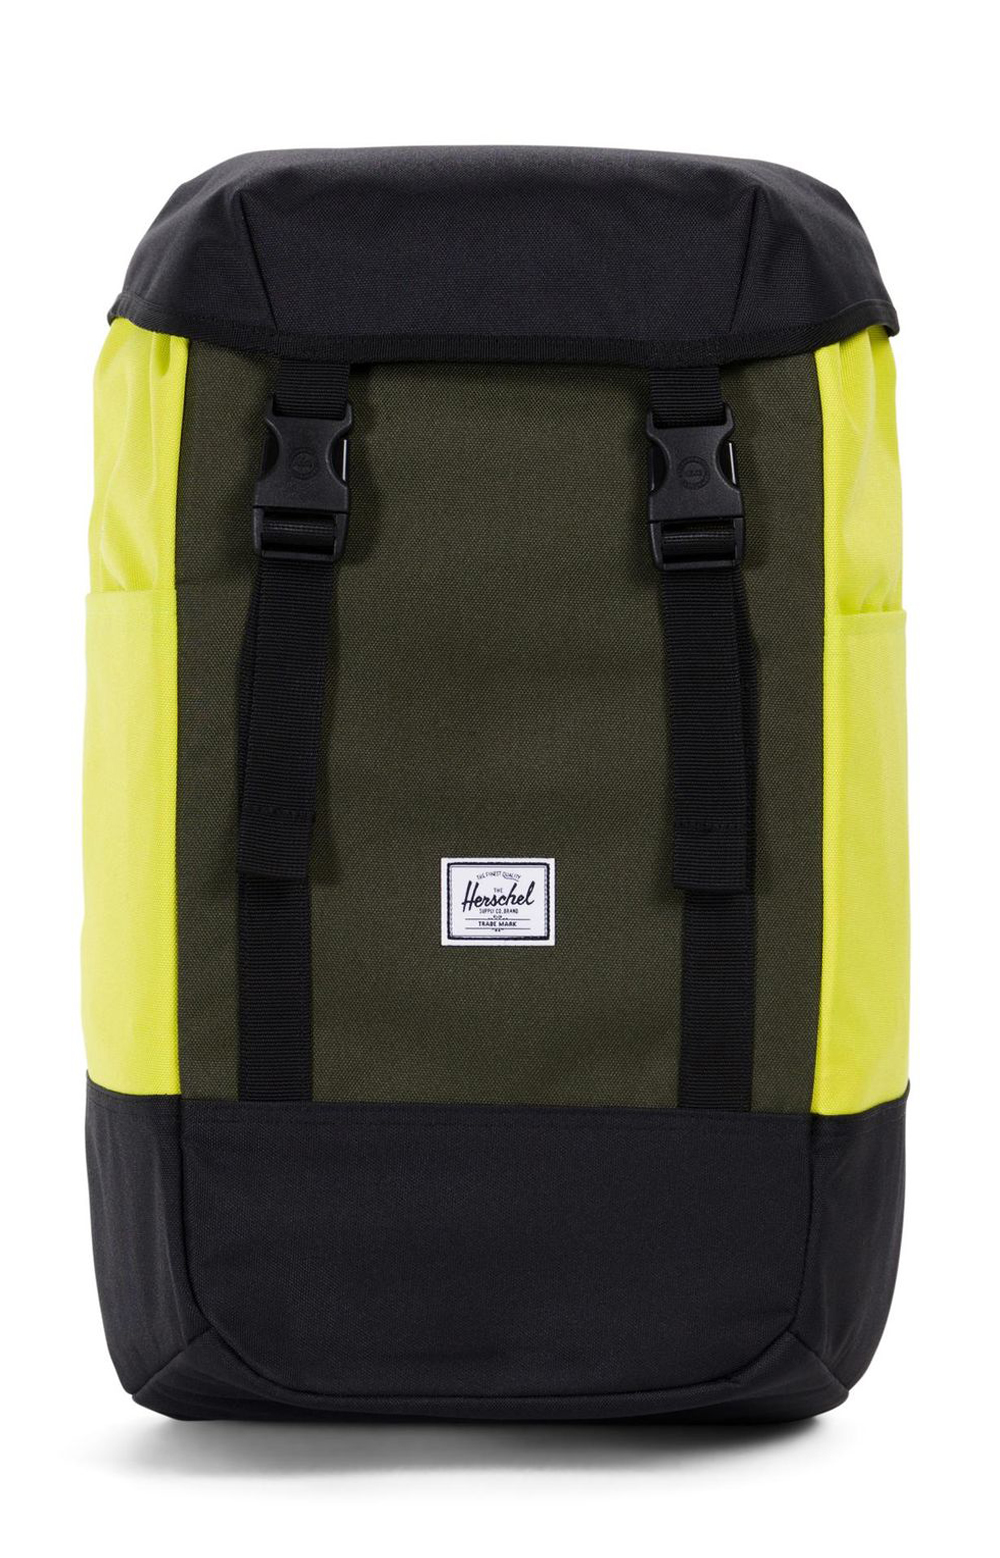 734d1bd41a98 Iona Backpack - Black Forest Night Evening Primrose